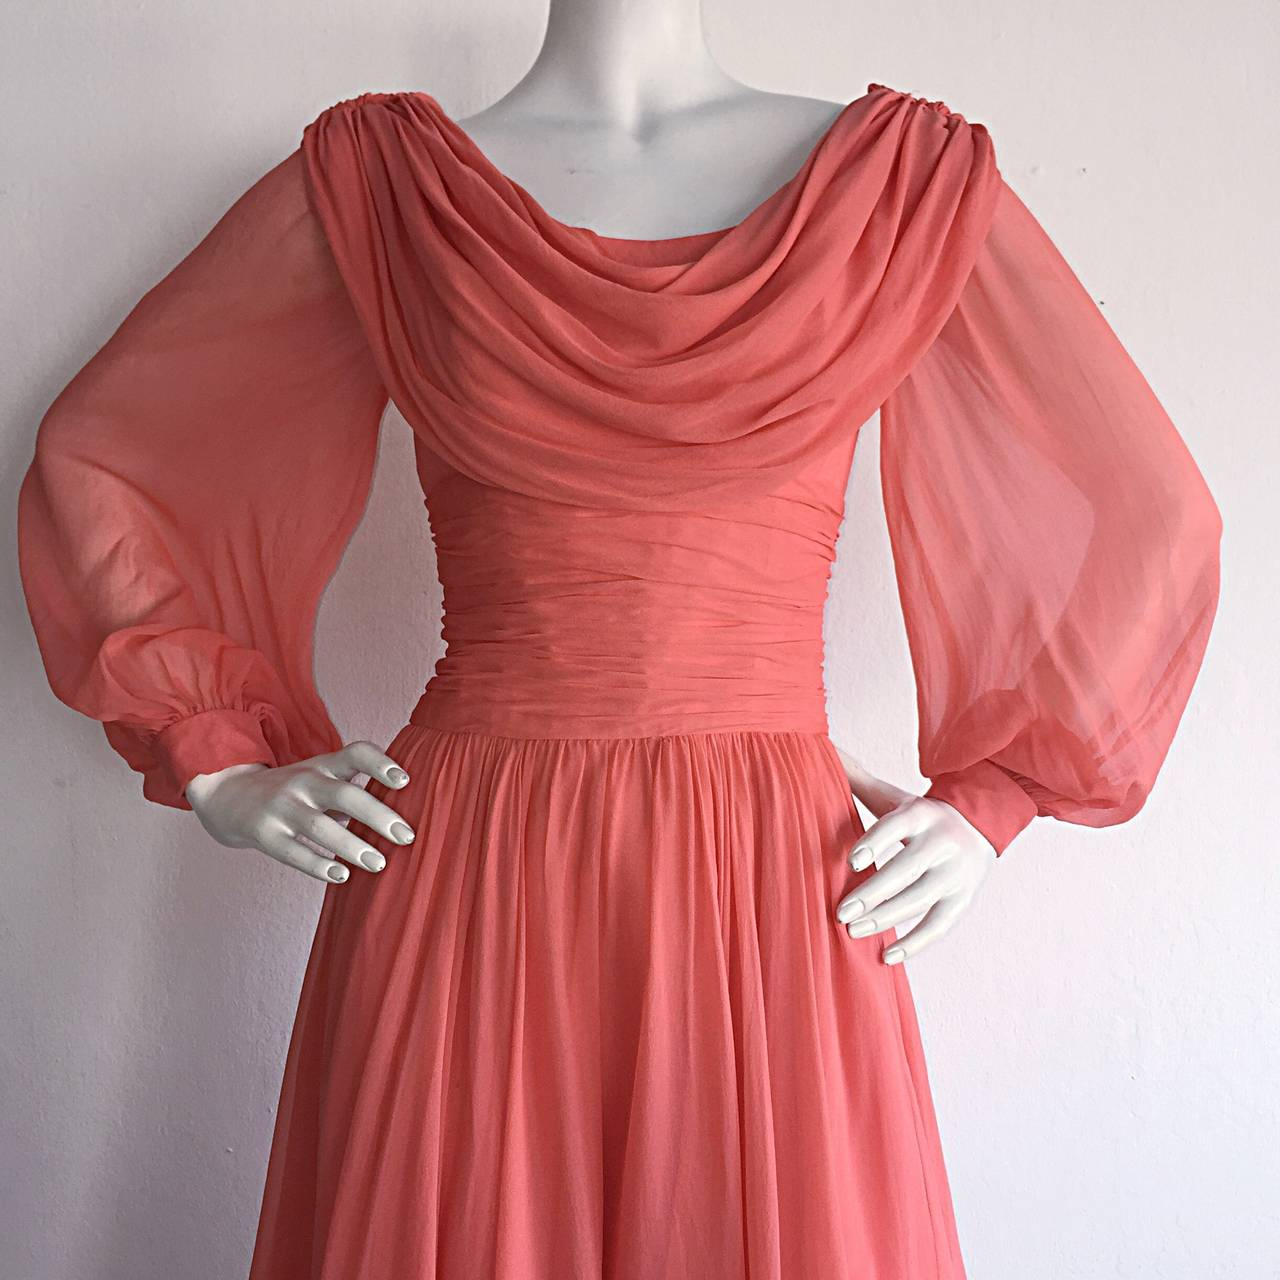 Beautiful 1970s Mignon Pink Coral Grecian Chiffon Dress 4